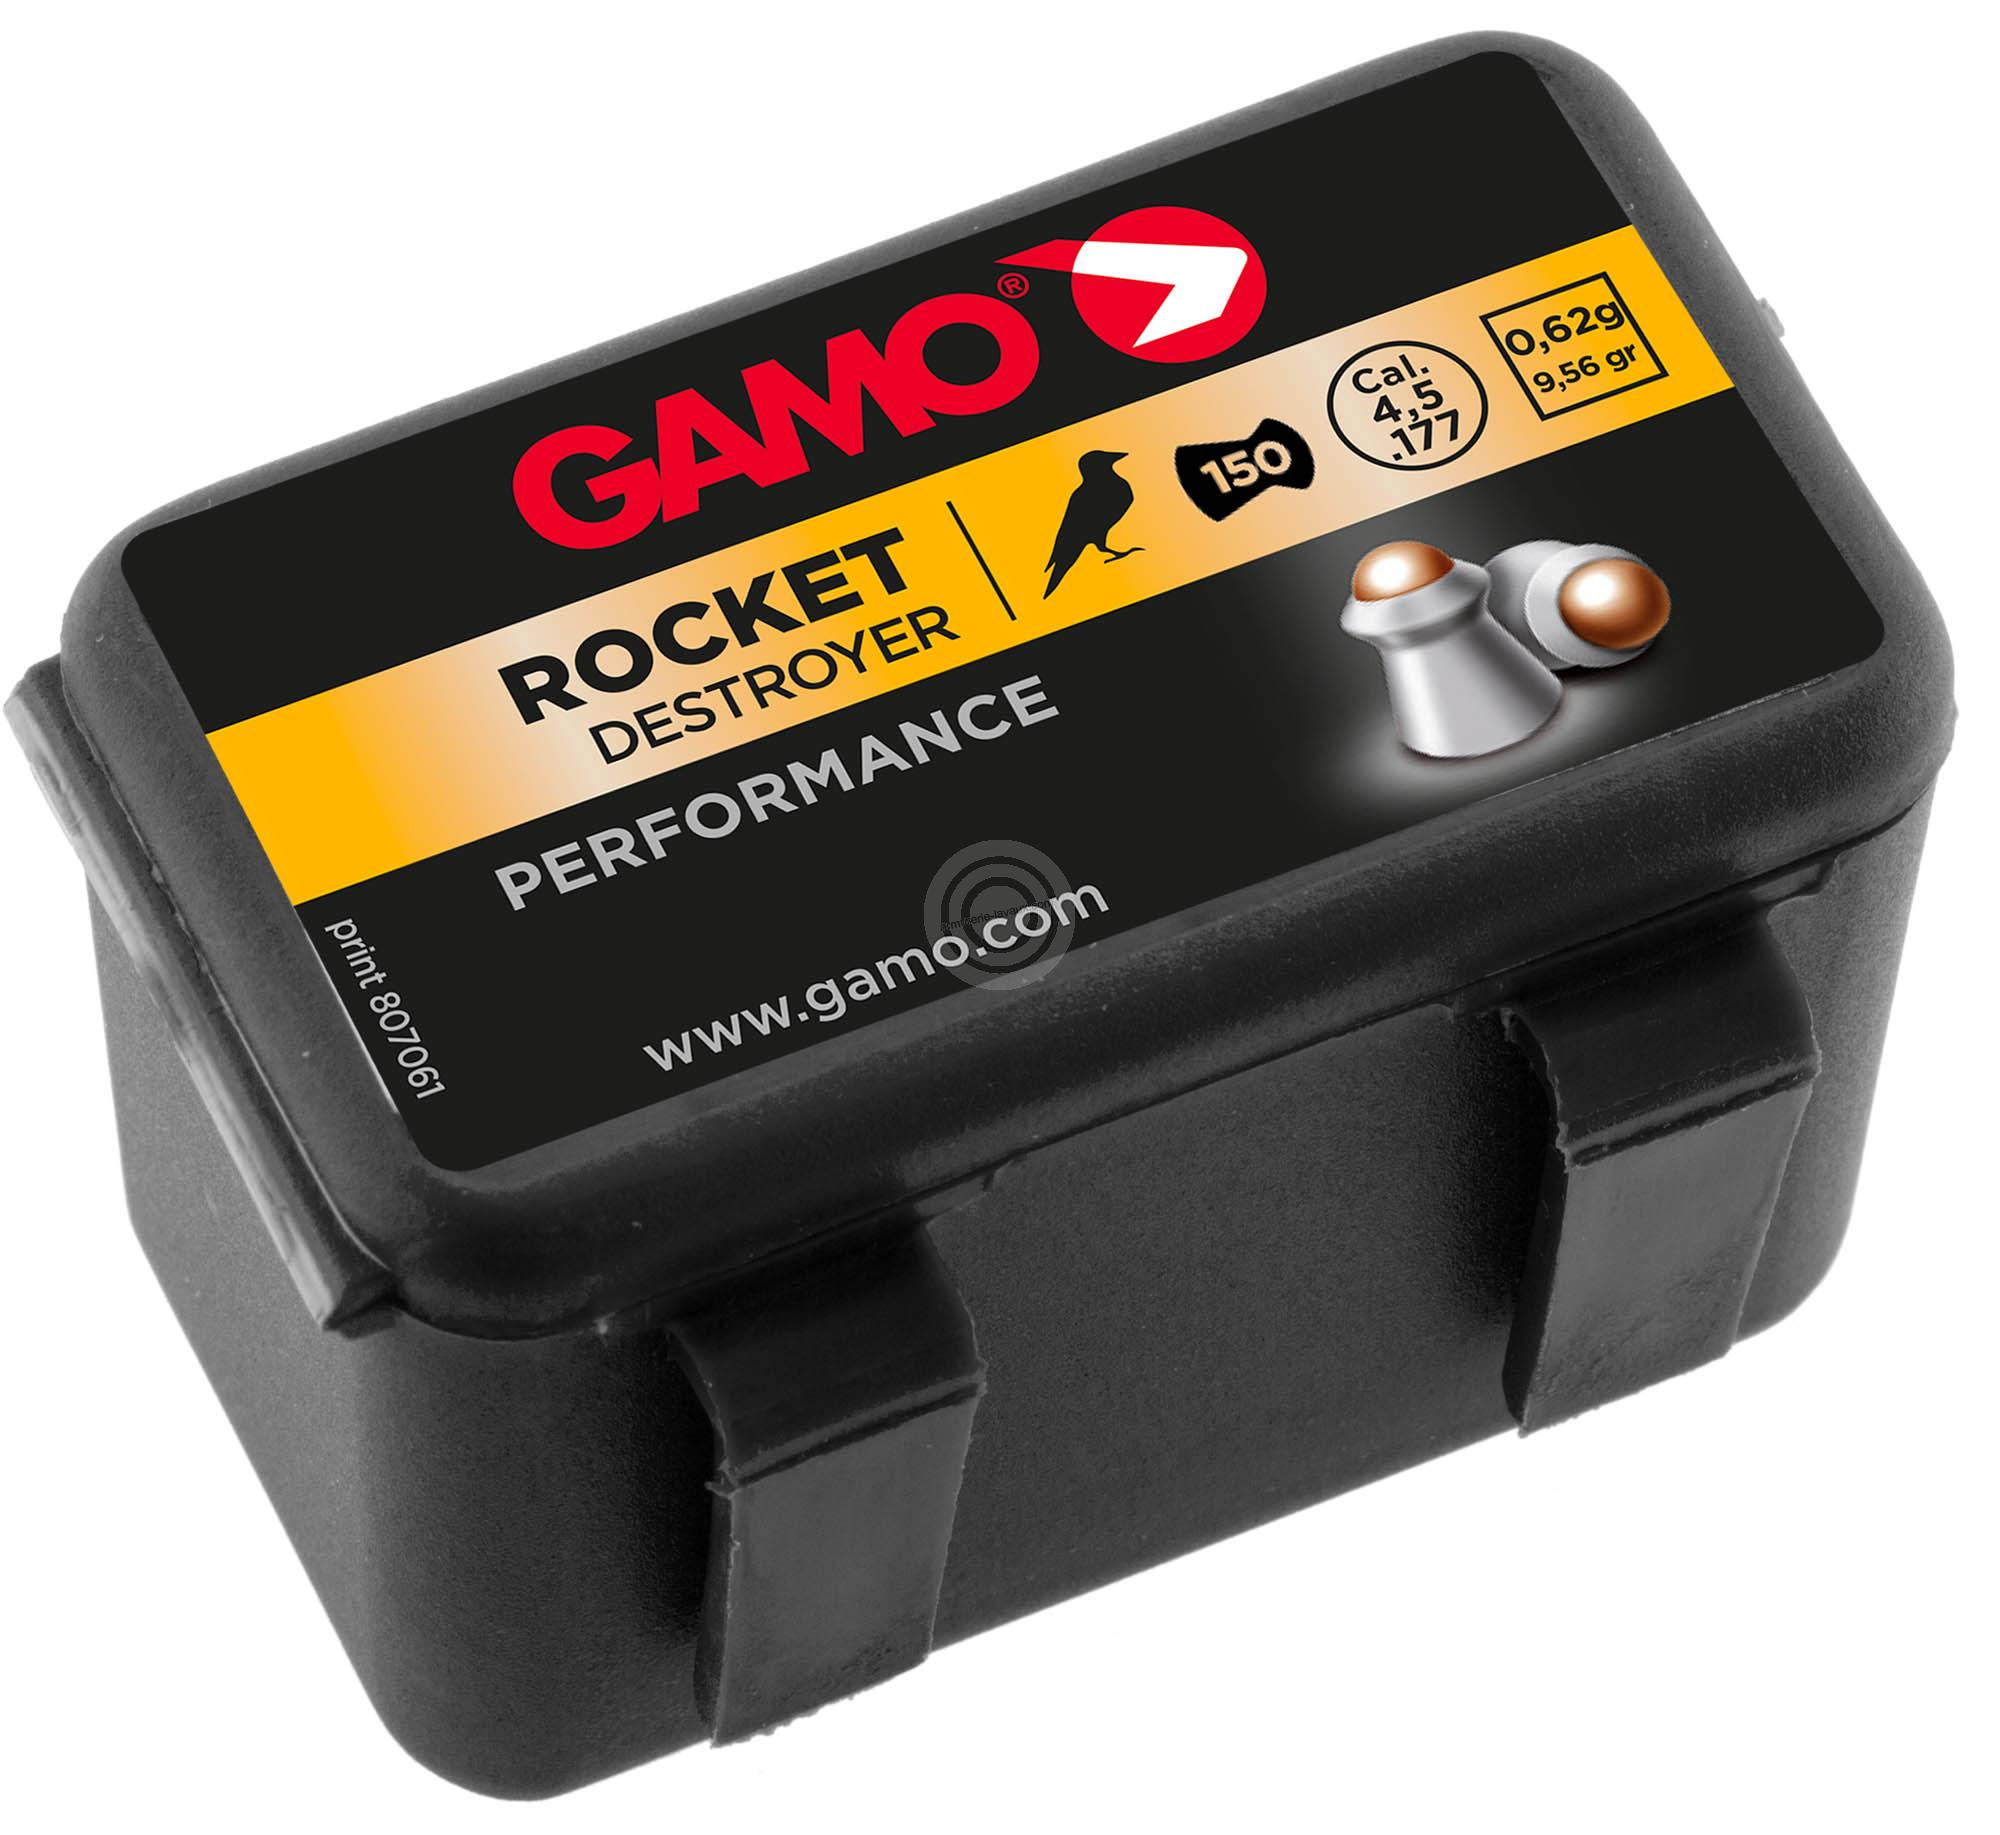 Plombs 4.5 Gamo ROCKET